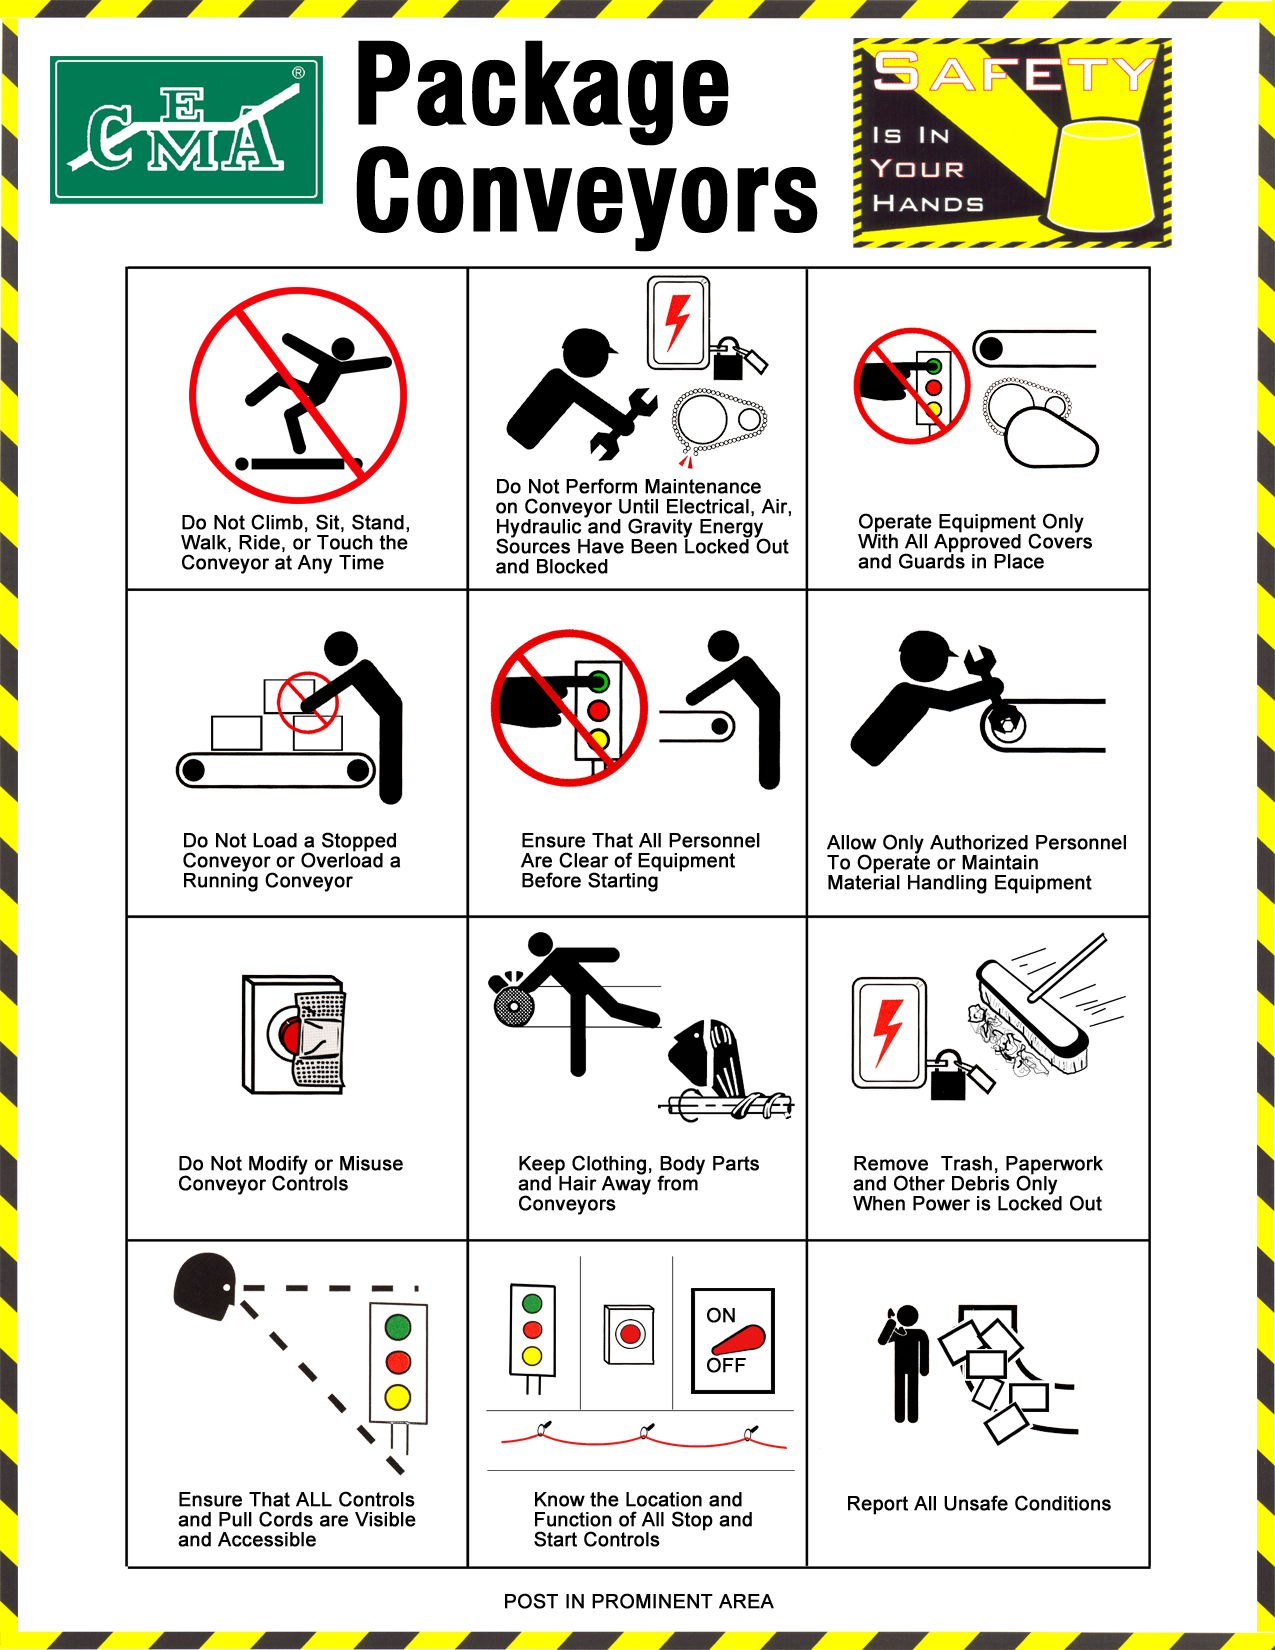 Package Conveyor Safety